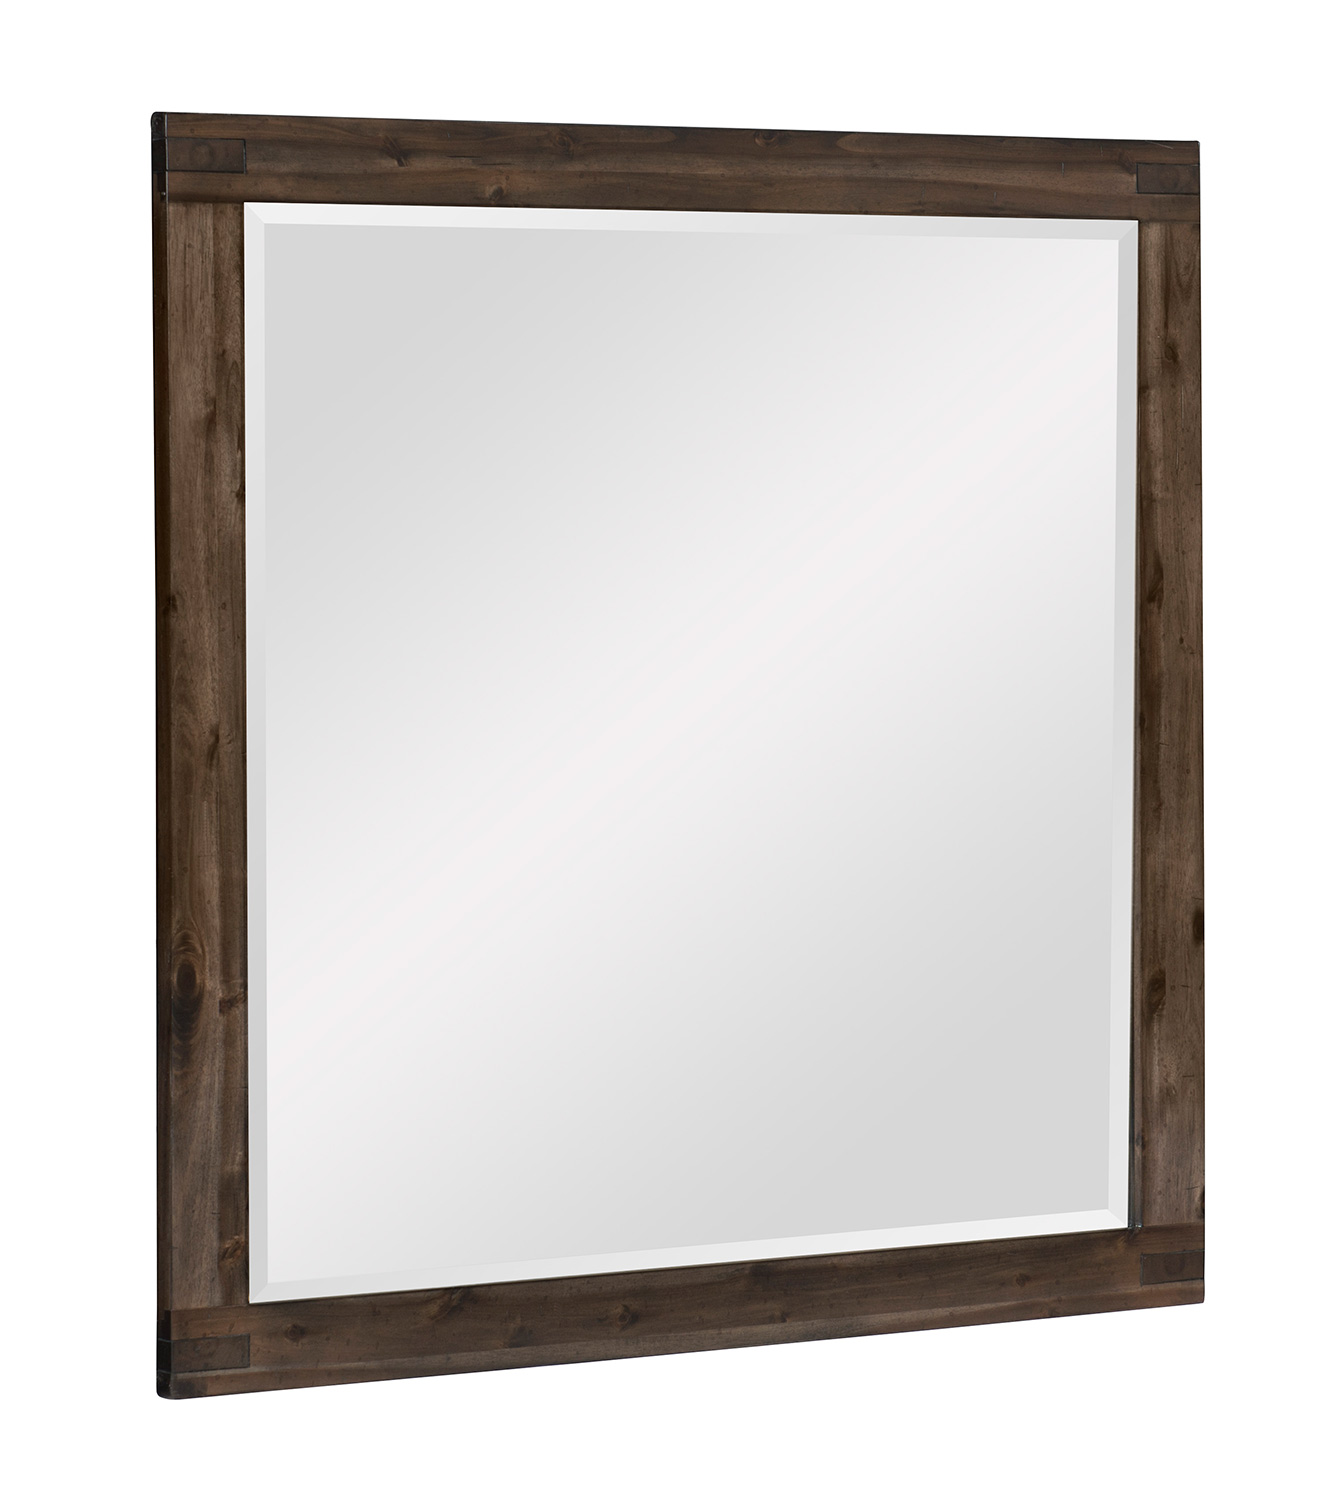 Homelegance Parnell Mirror - Rustic Cherry